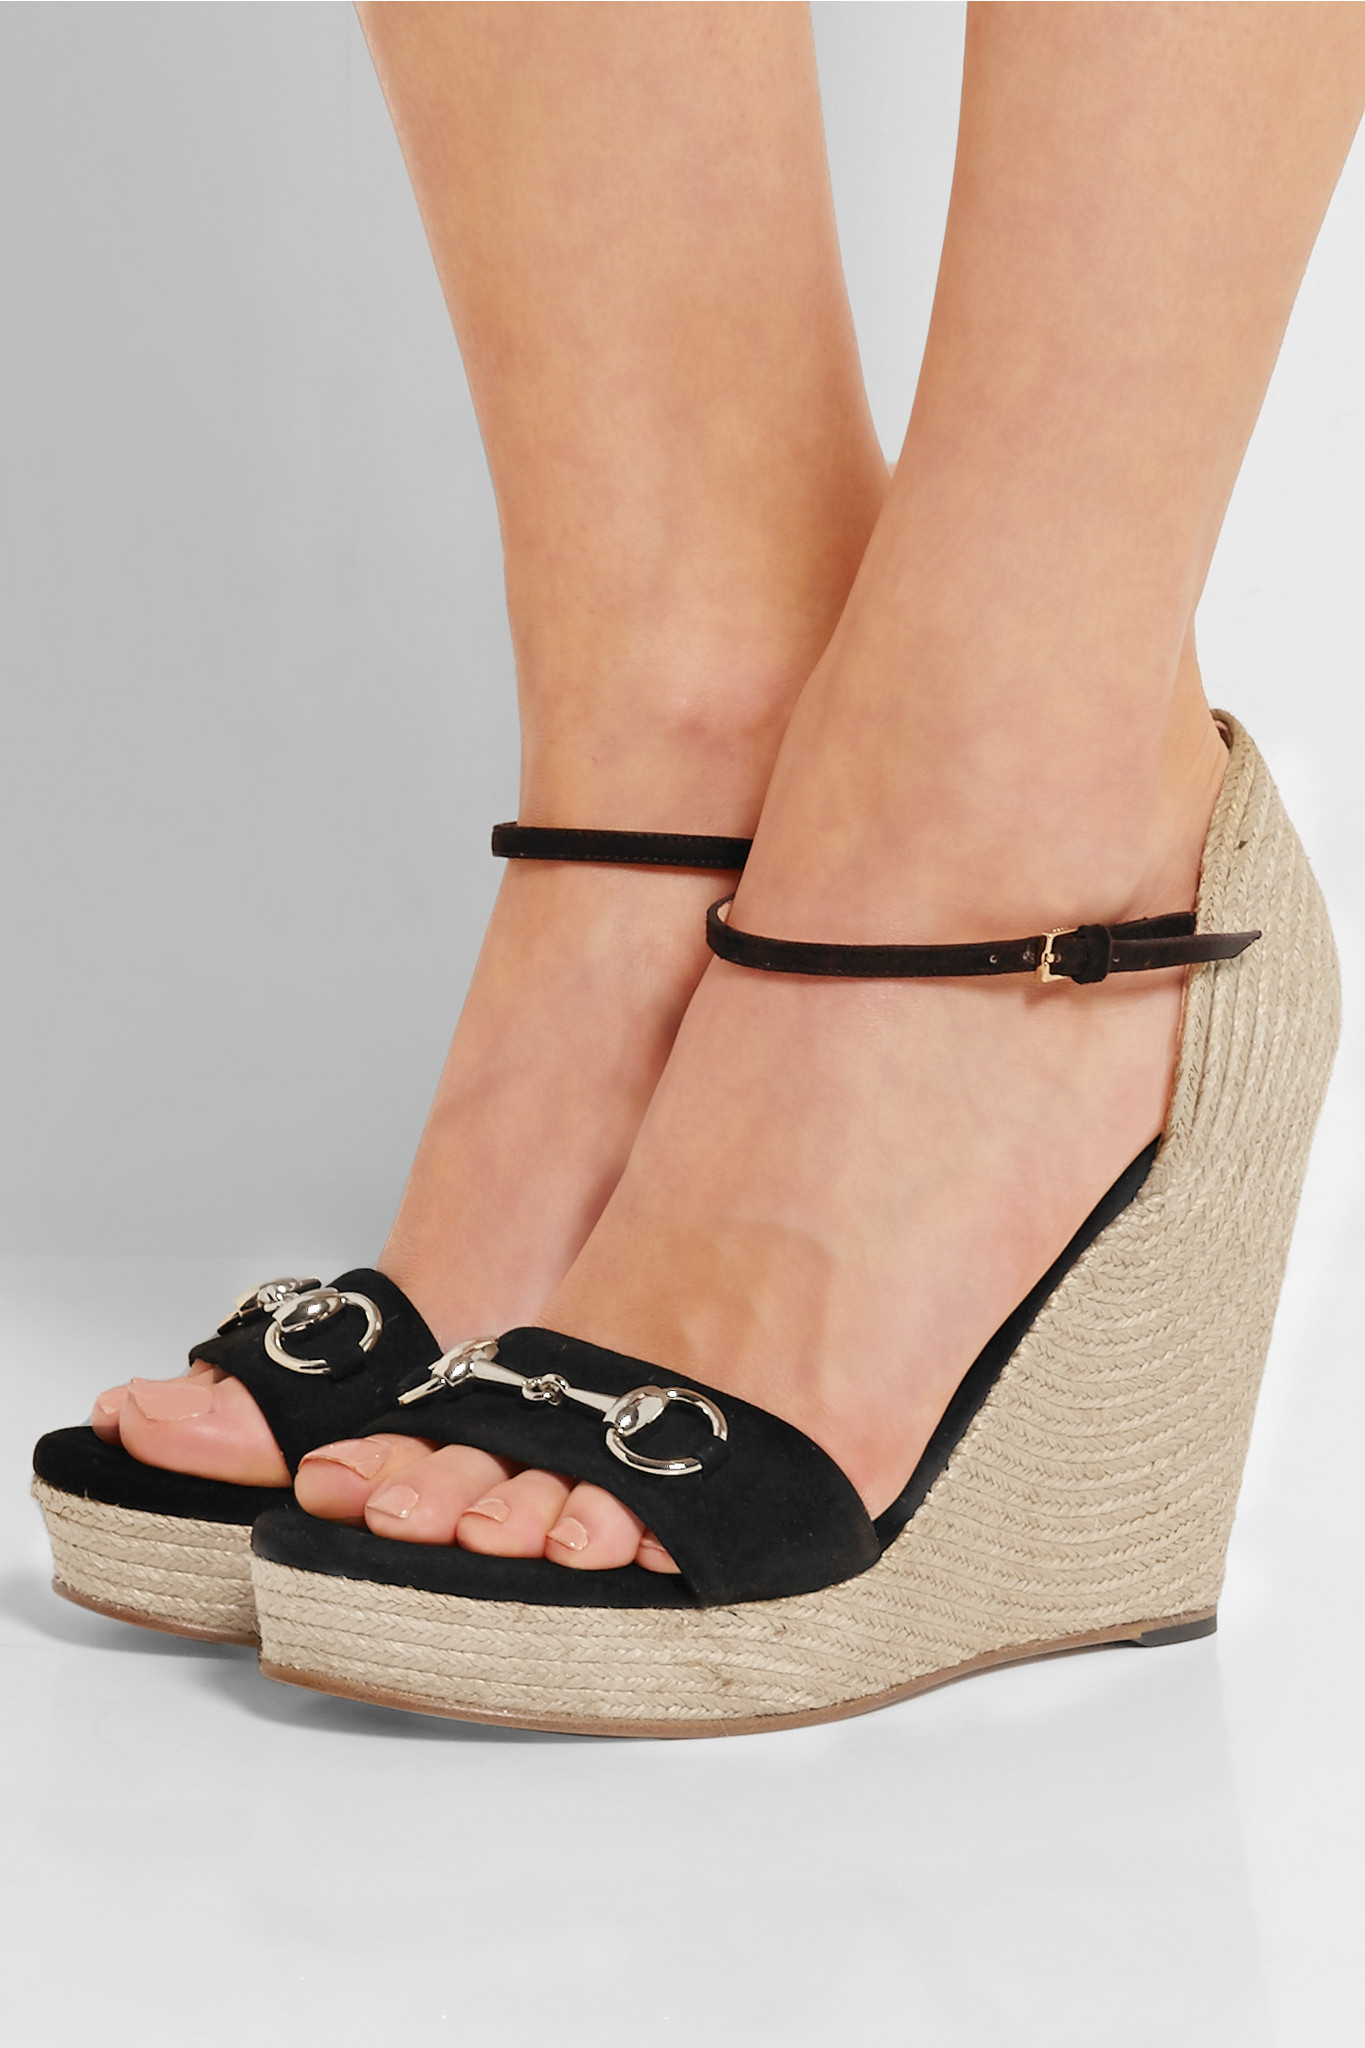 b6524c24d Gucci Horsebit-detailed Suede Espadrille Wedge Sandals in Black - Lyst